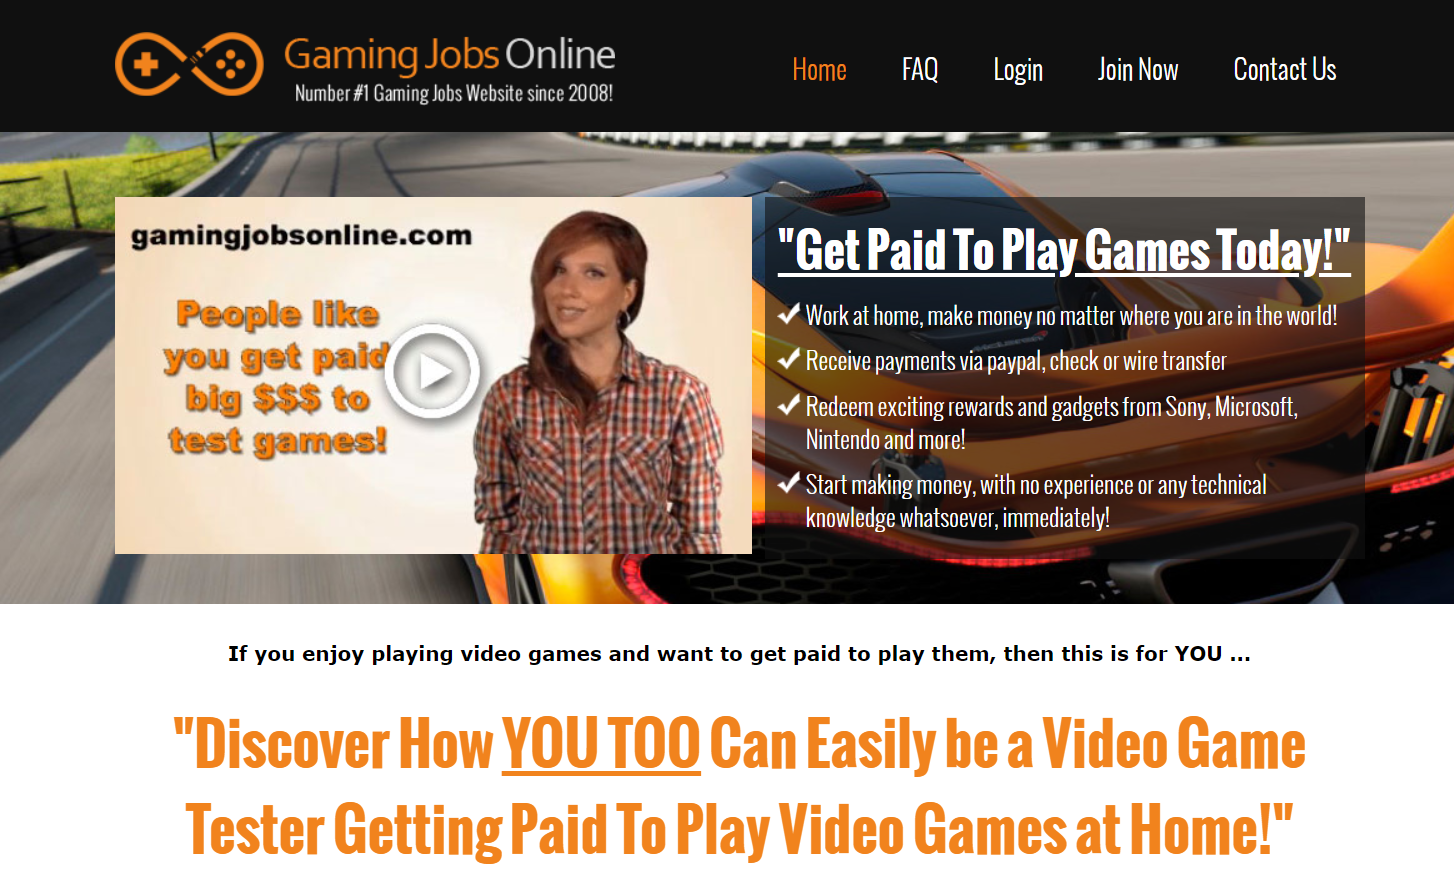 game jobs online review